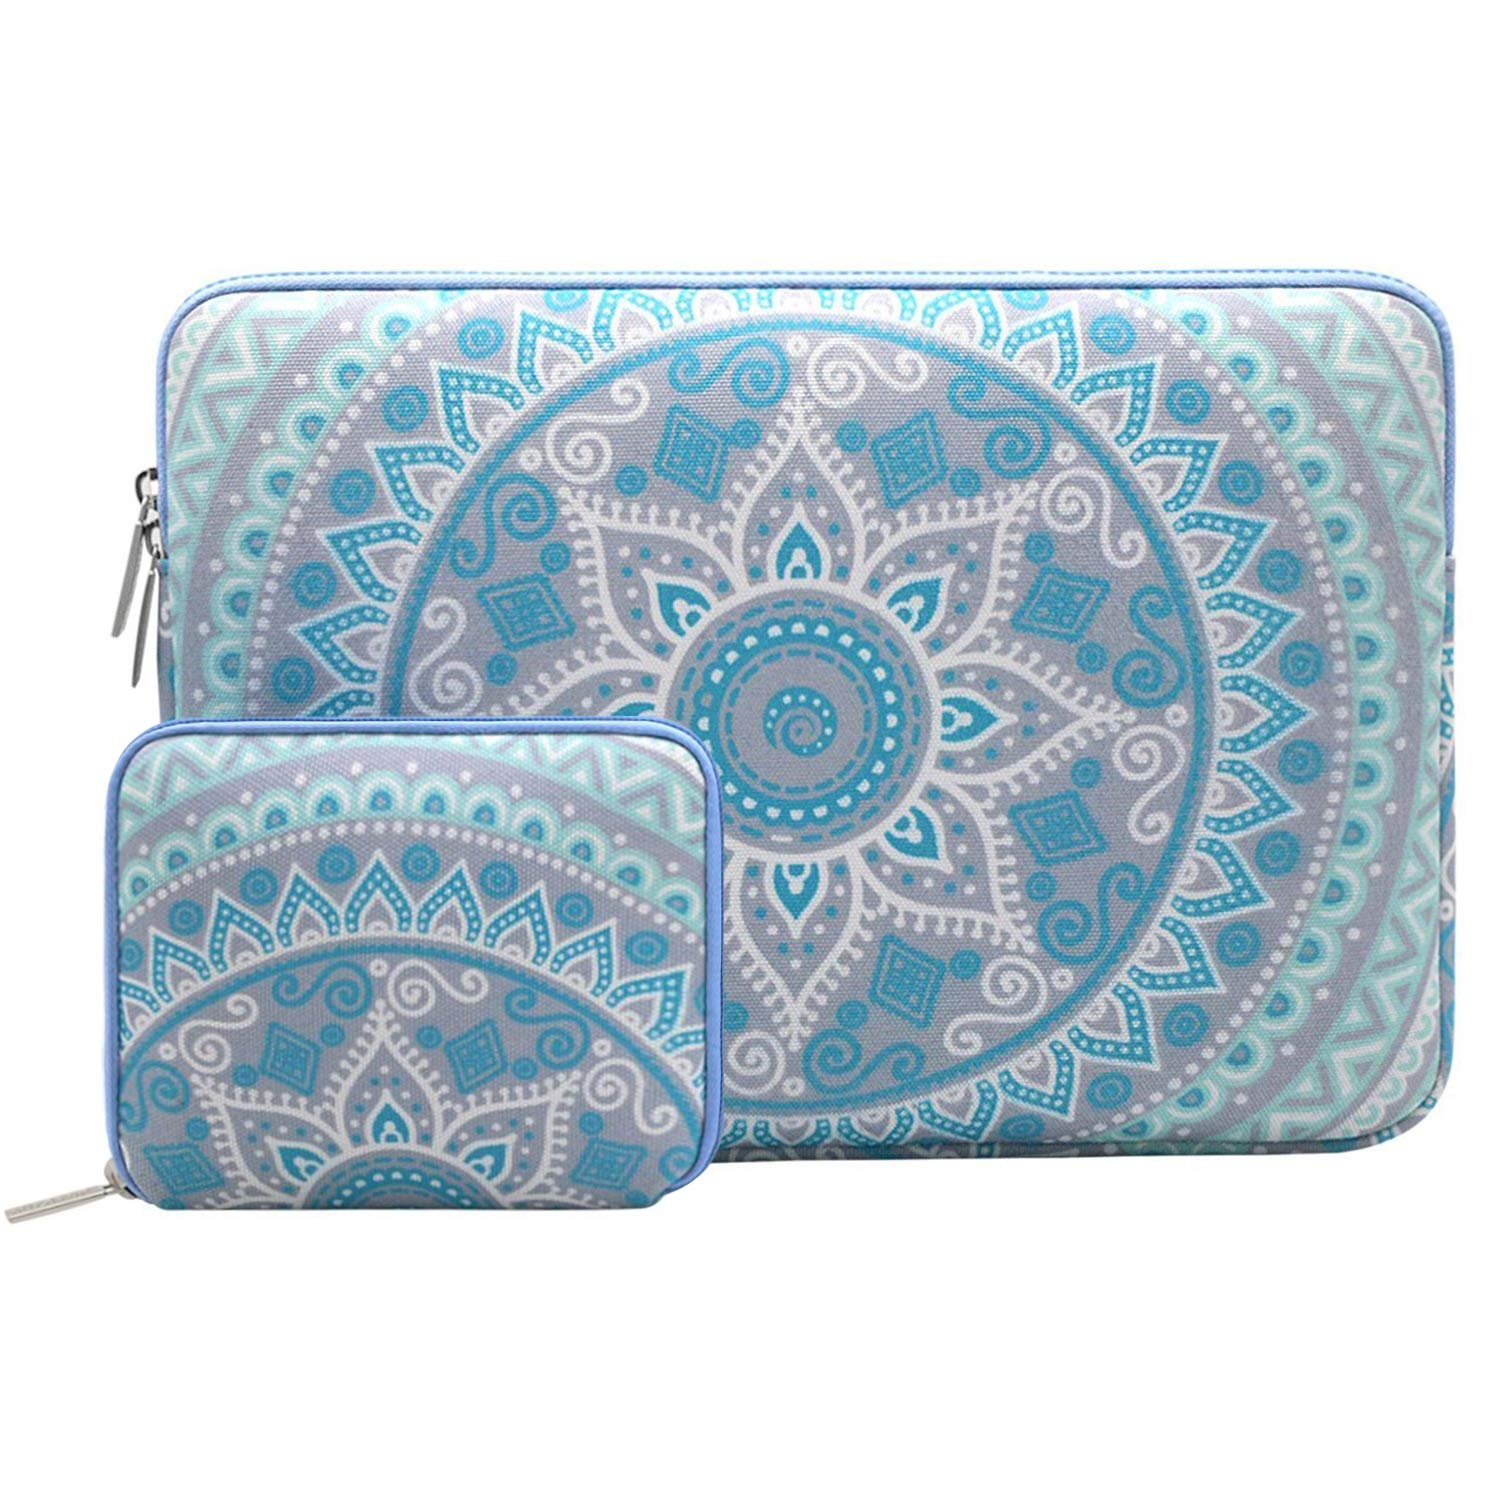 Mosiso Mosiso Laptop Sleeve Bag for 13-13.3 Inch MacBook Pro, MacBook Air, Notebook Computer with Small Case, Canvas Fabric Mandala Pattern Protective Cover, Mint Green and Blue